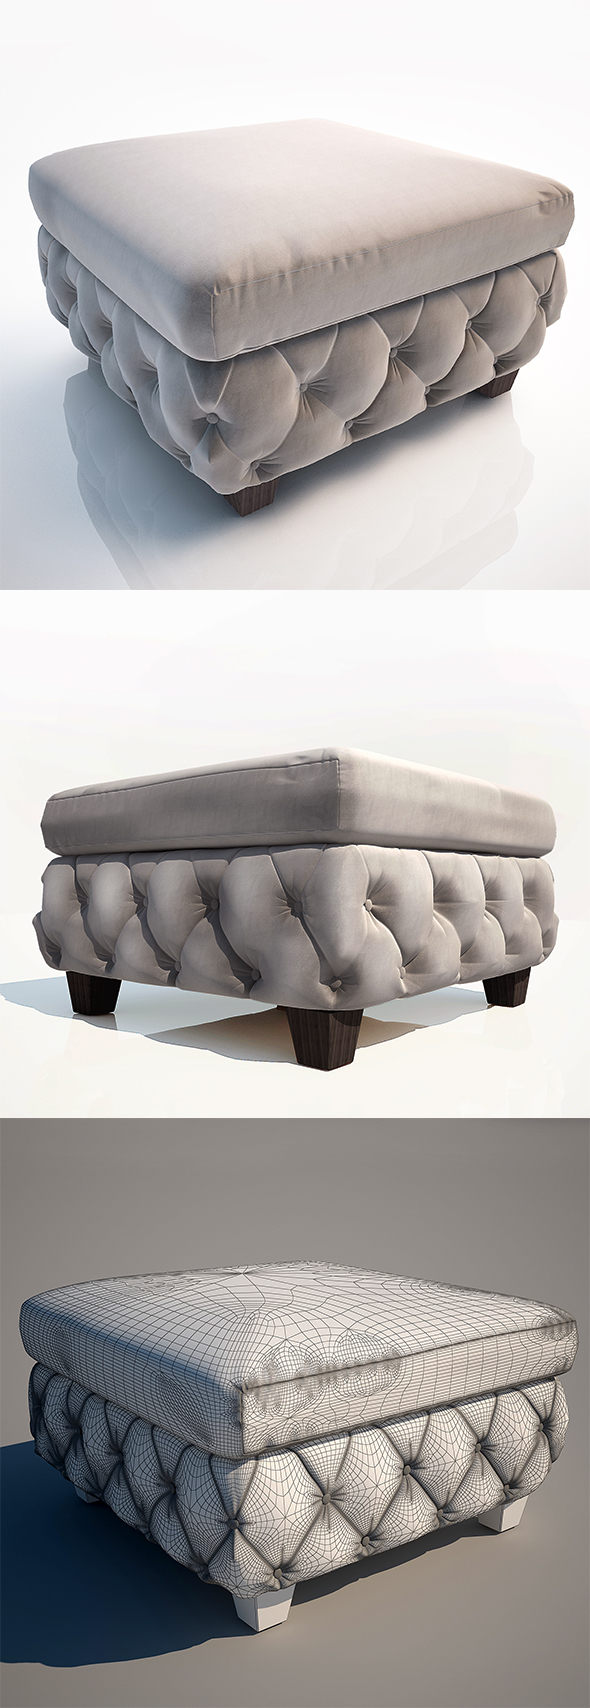 Ottoman Kare Design - 3DOcean Item for Sale